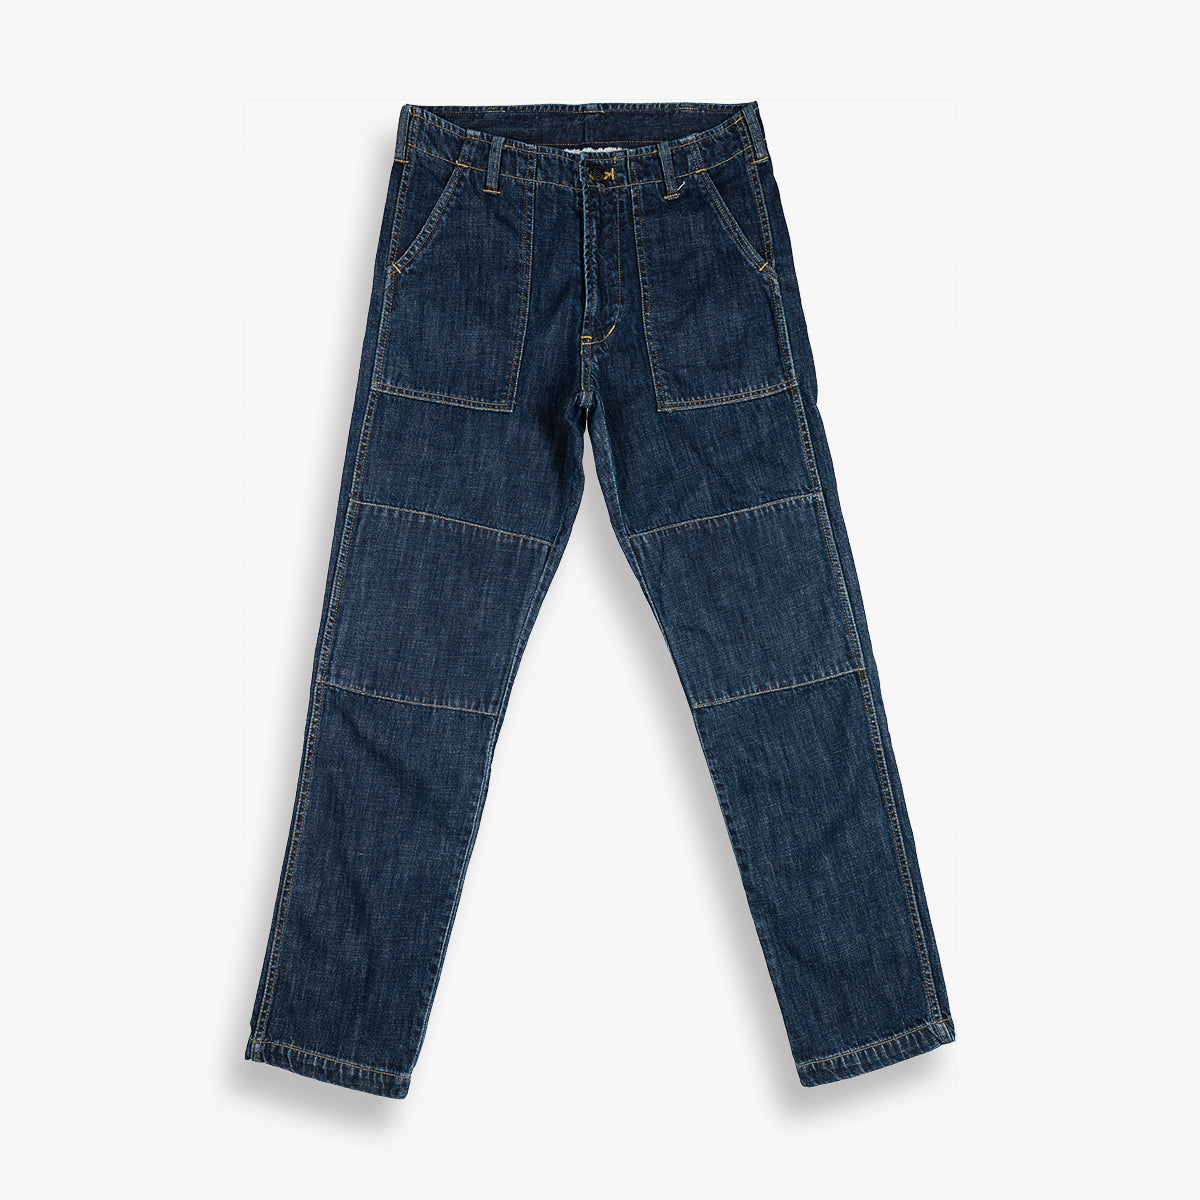 Denim ARVN Advisor Pants